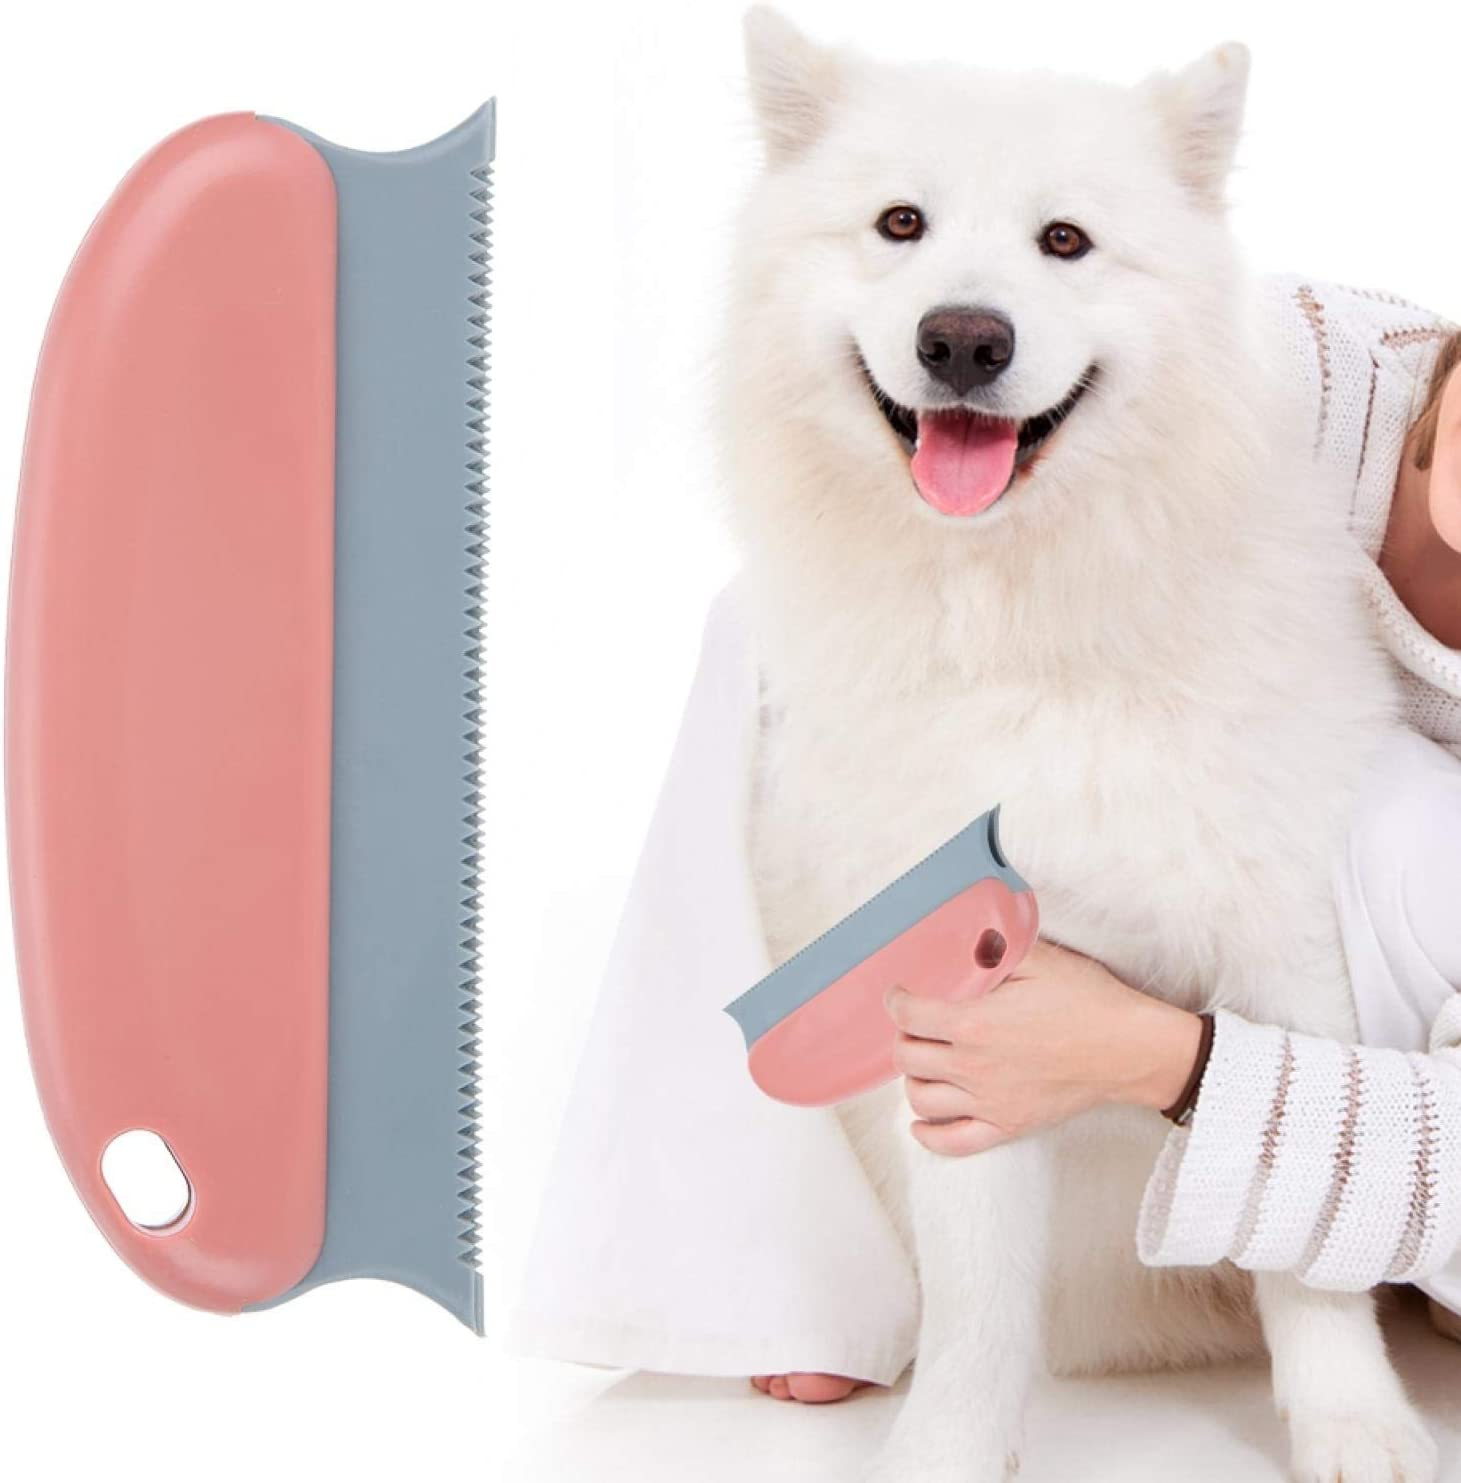 XQAQX 2021new shipping free shipping Special Campaign Pet Hair Brush Cleaning Multifunction Ca Tool Dogs